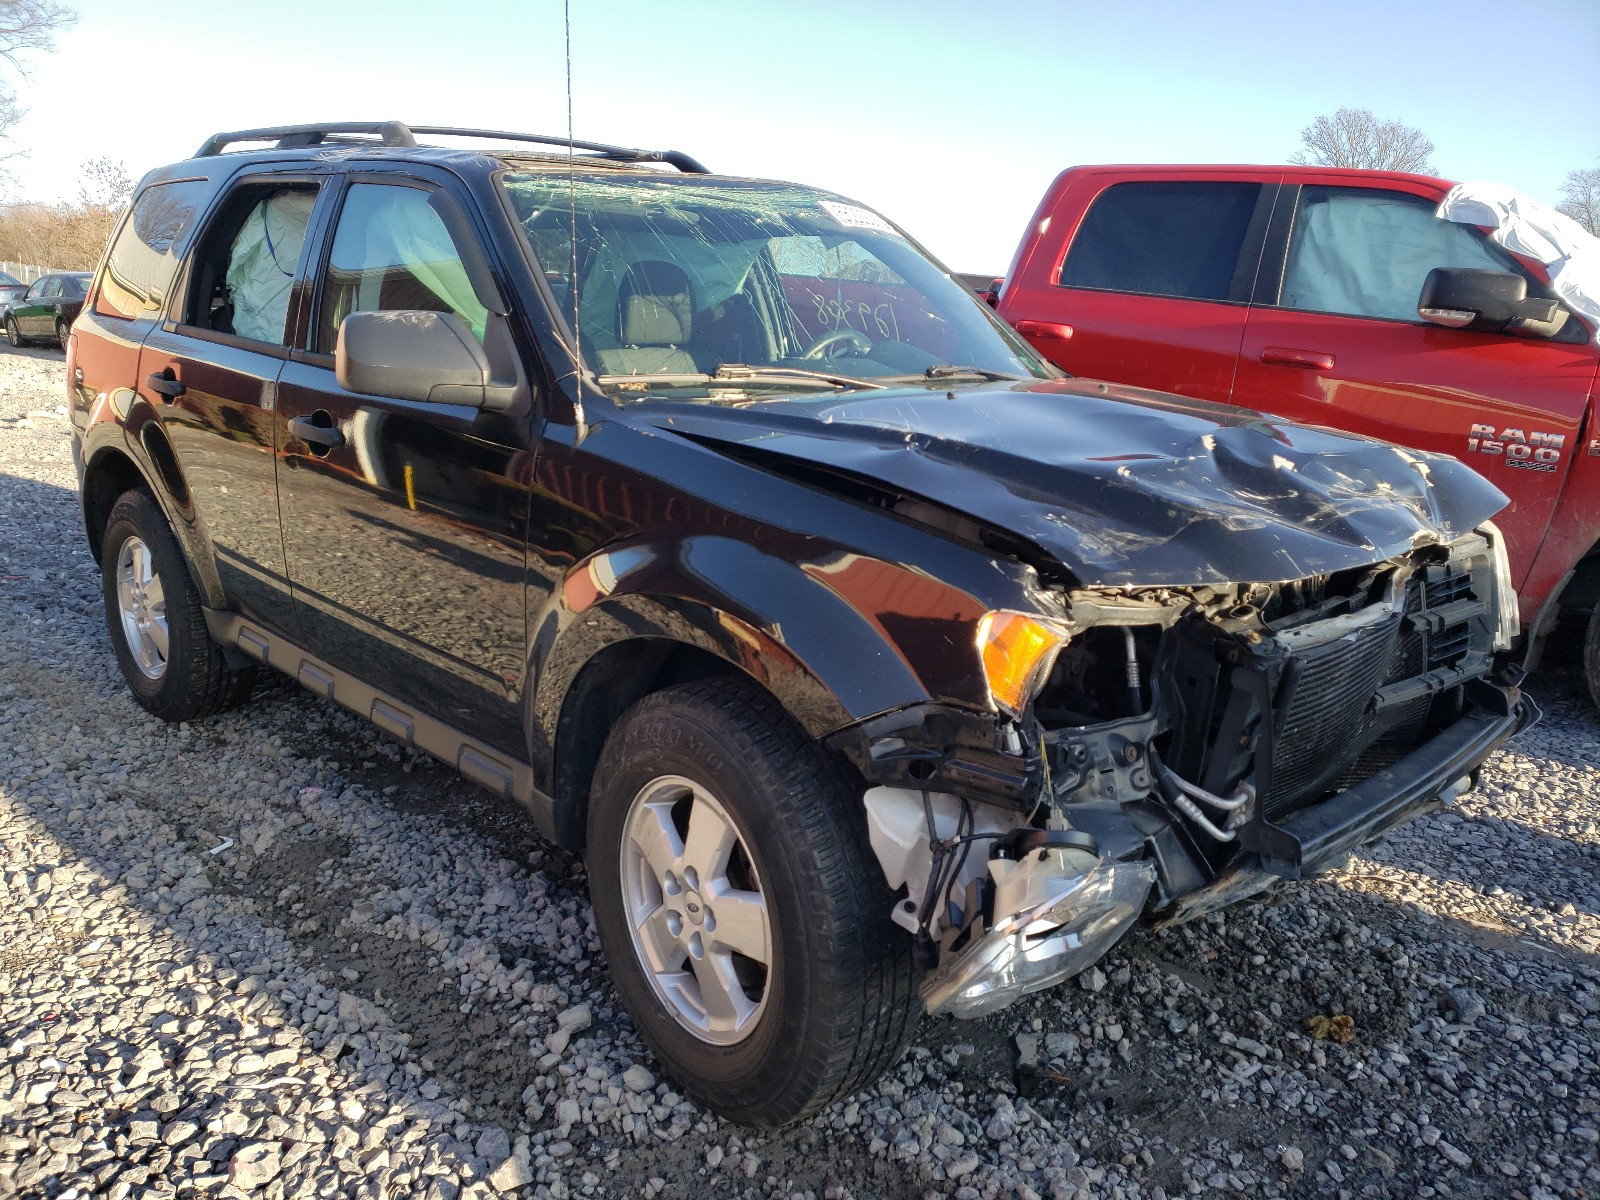 2012 Ford Escape Xlt For Sale At Copart Ebensburg Pa Lot 56229380 Salvagereseller Com